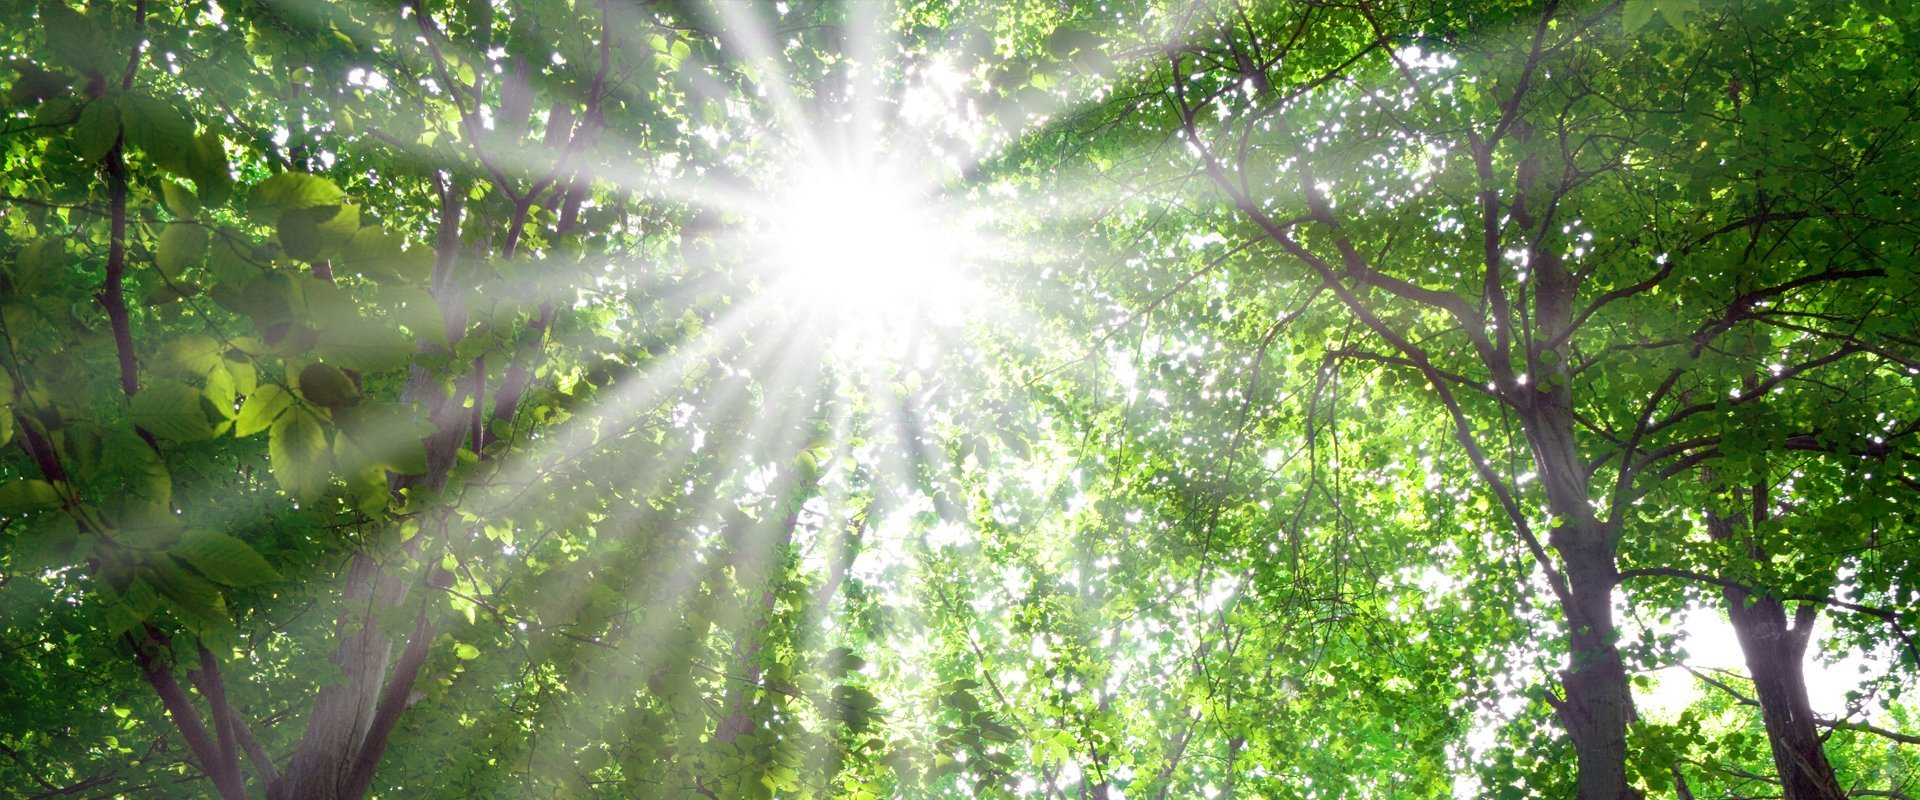 sunrays from the tree